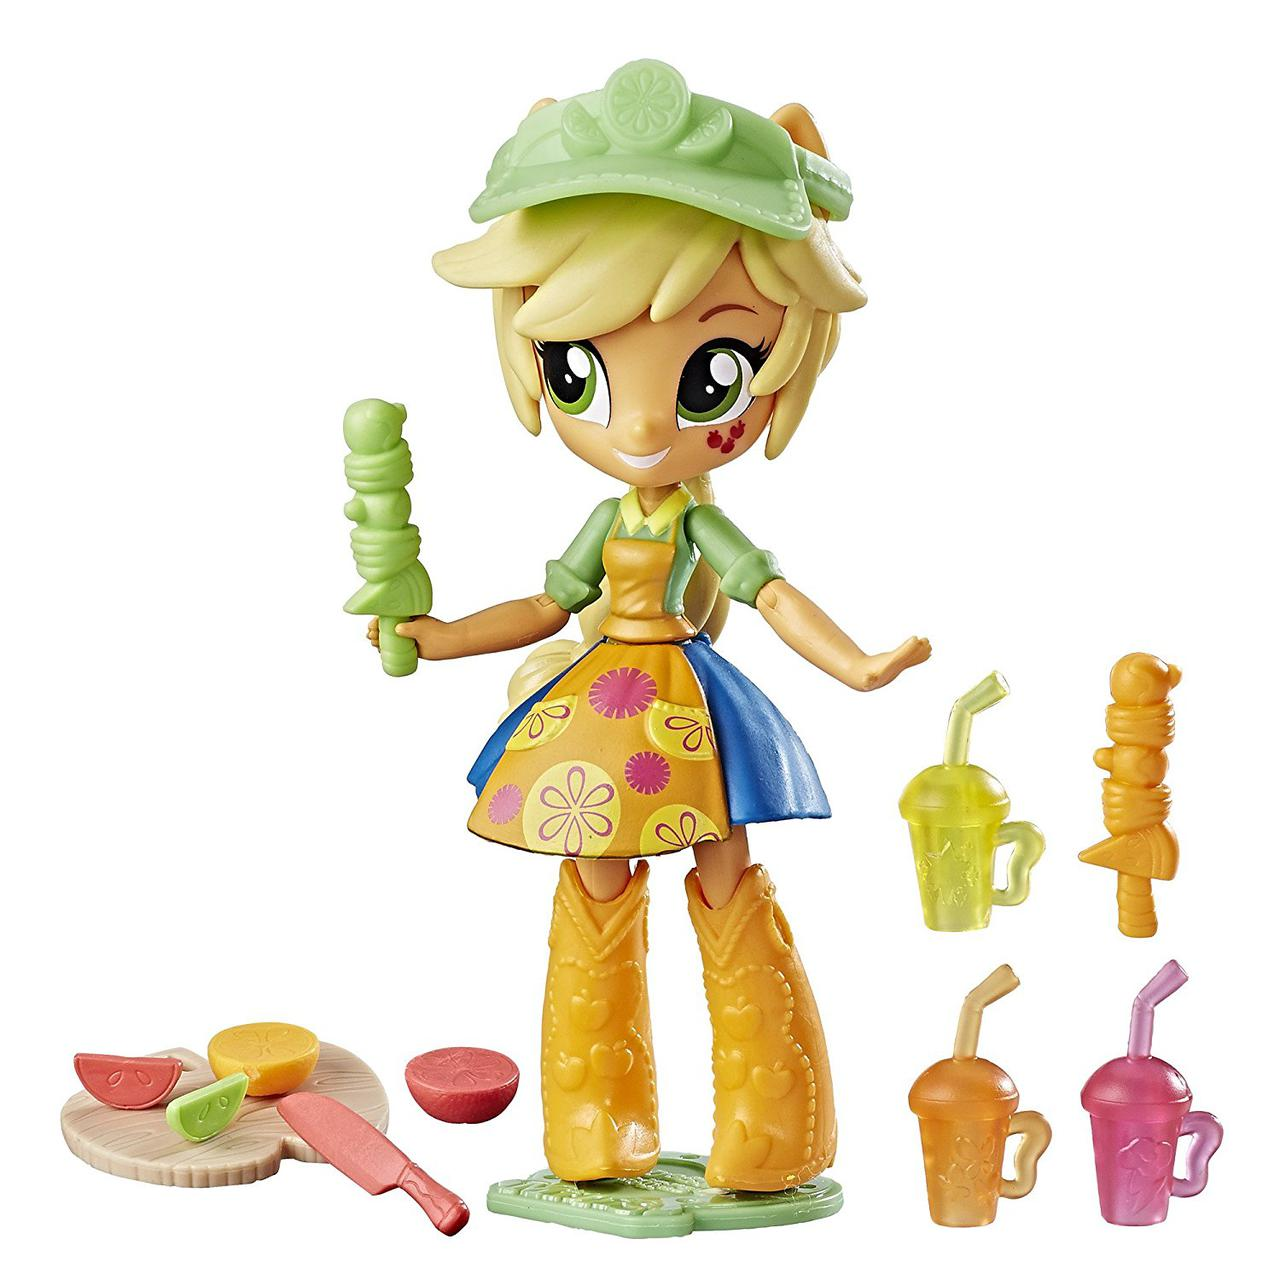 My Little Pony Эпплджек магазин фруктовых смузи Equestria Girls Applejack Fruit Smoothies Shop Set